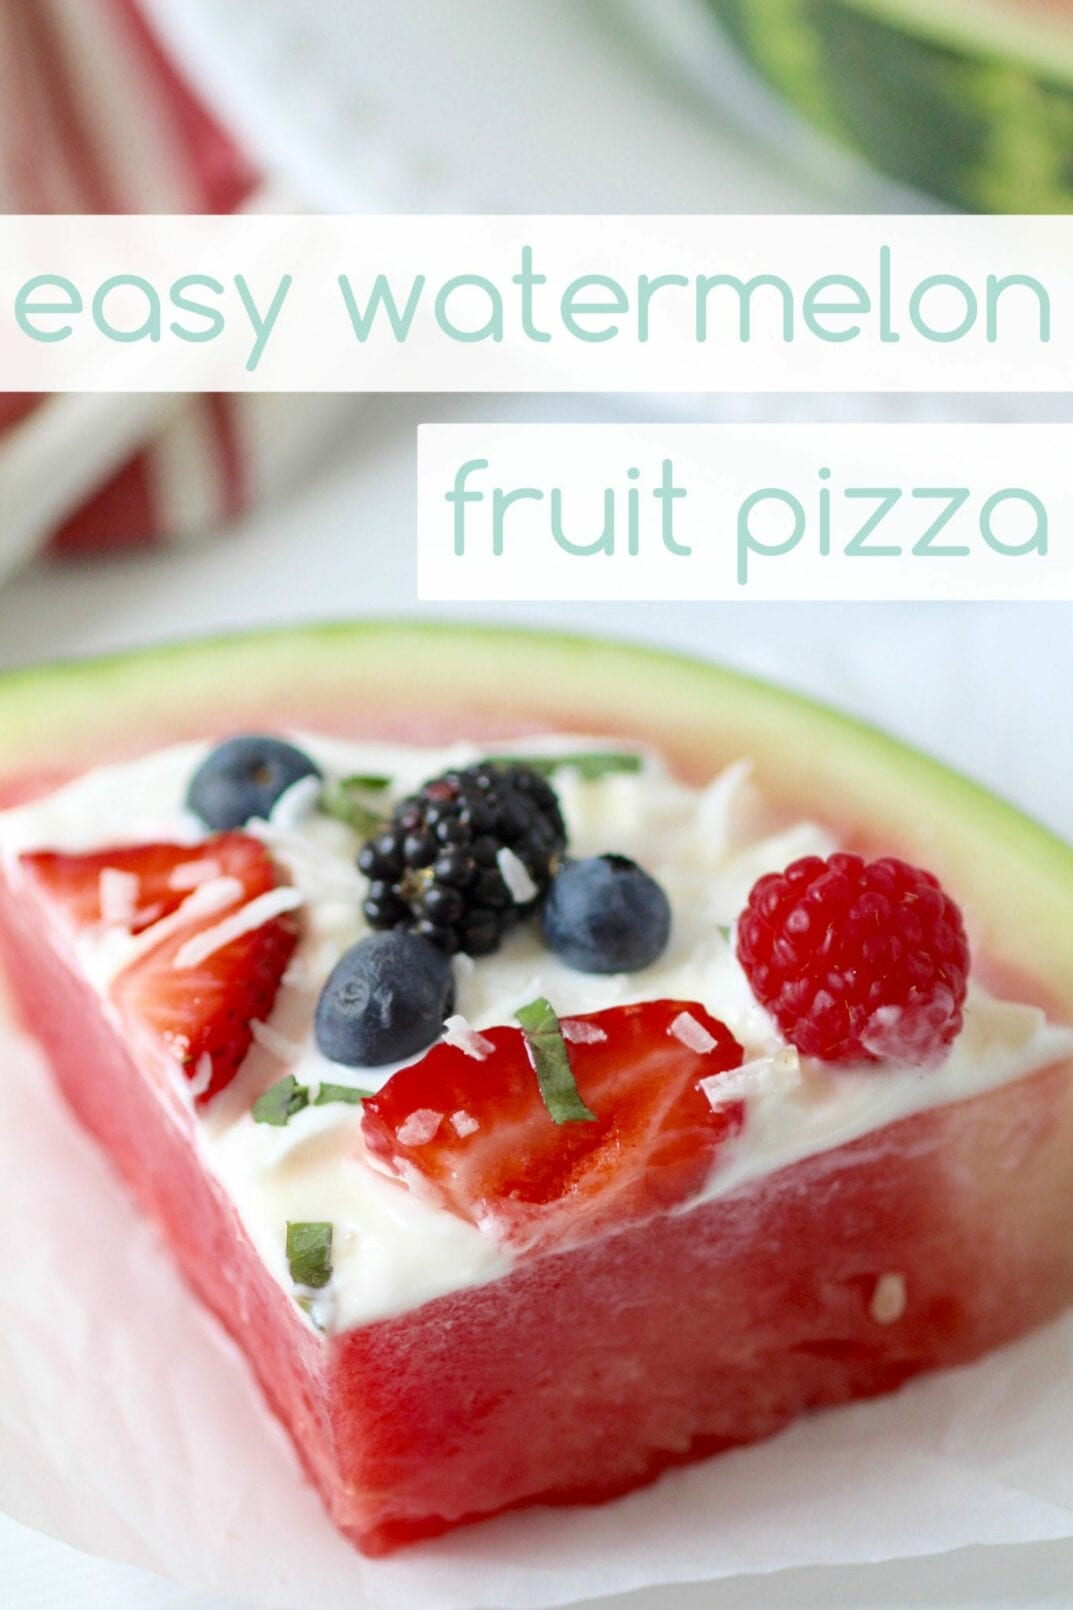 easy watermelon and berry fruit pizza | fruit pizza made with watermelon, berries and greek yogurt; healthy, delicious, and so easy even the kids can make it in 5 minutes or less! | www.nourishmovelove.com